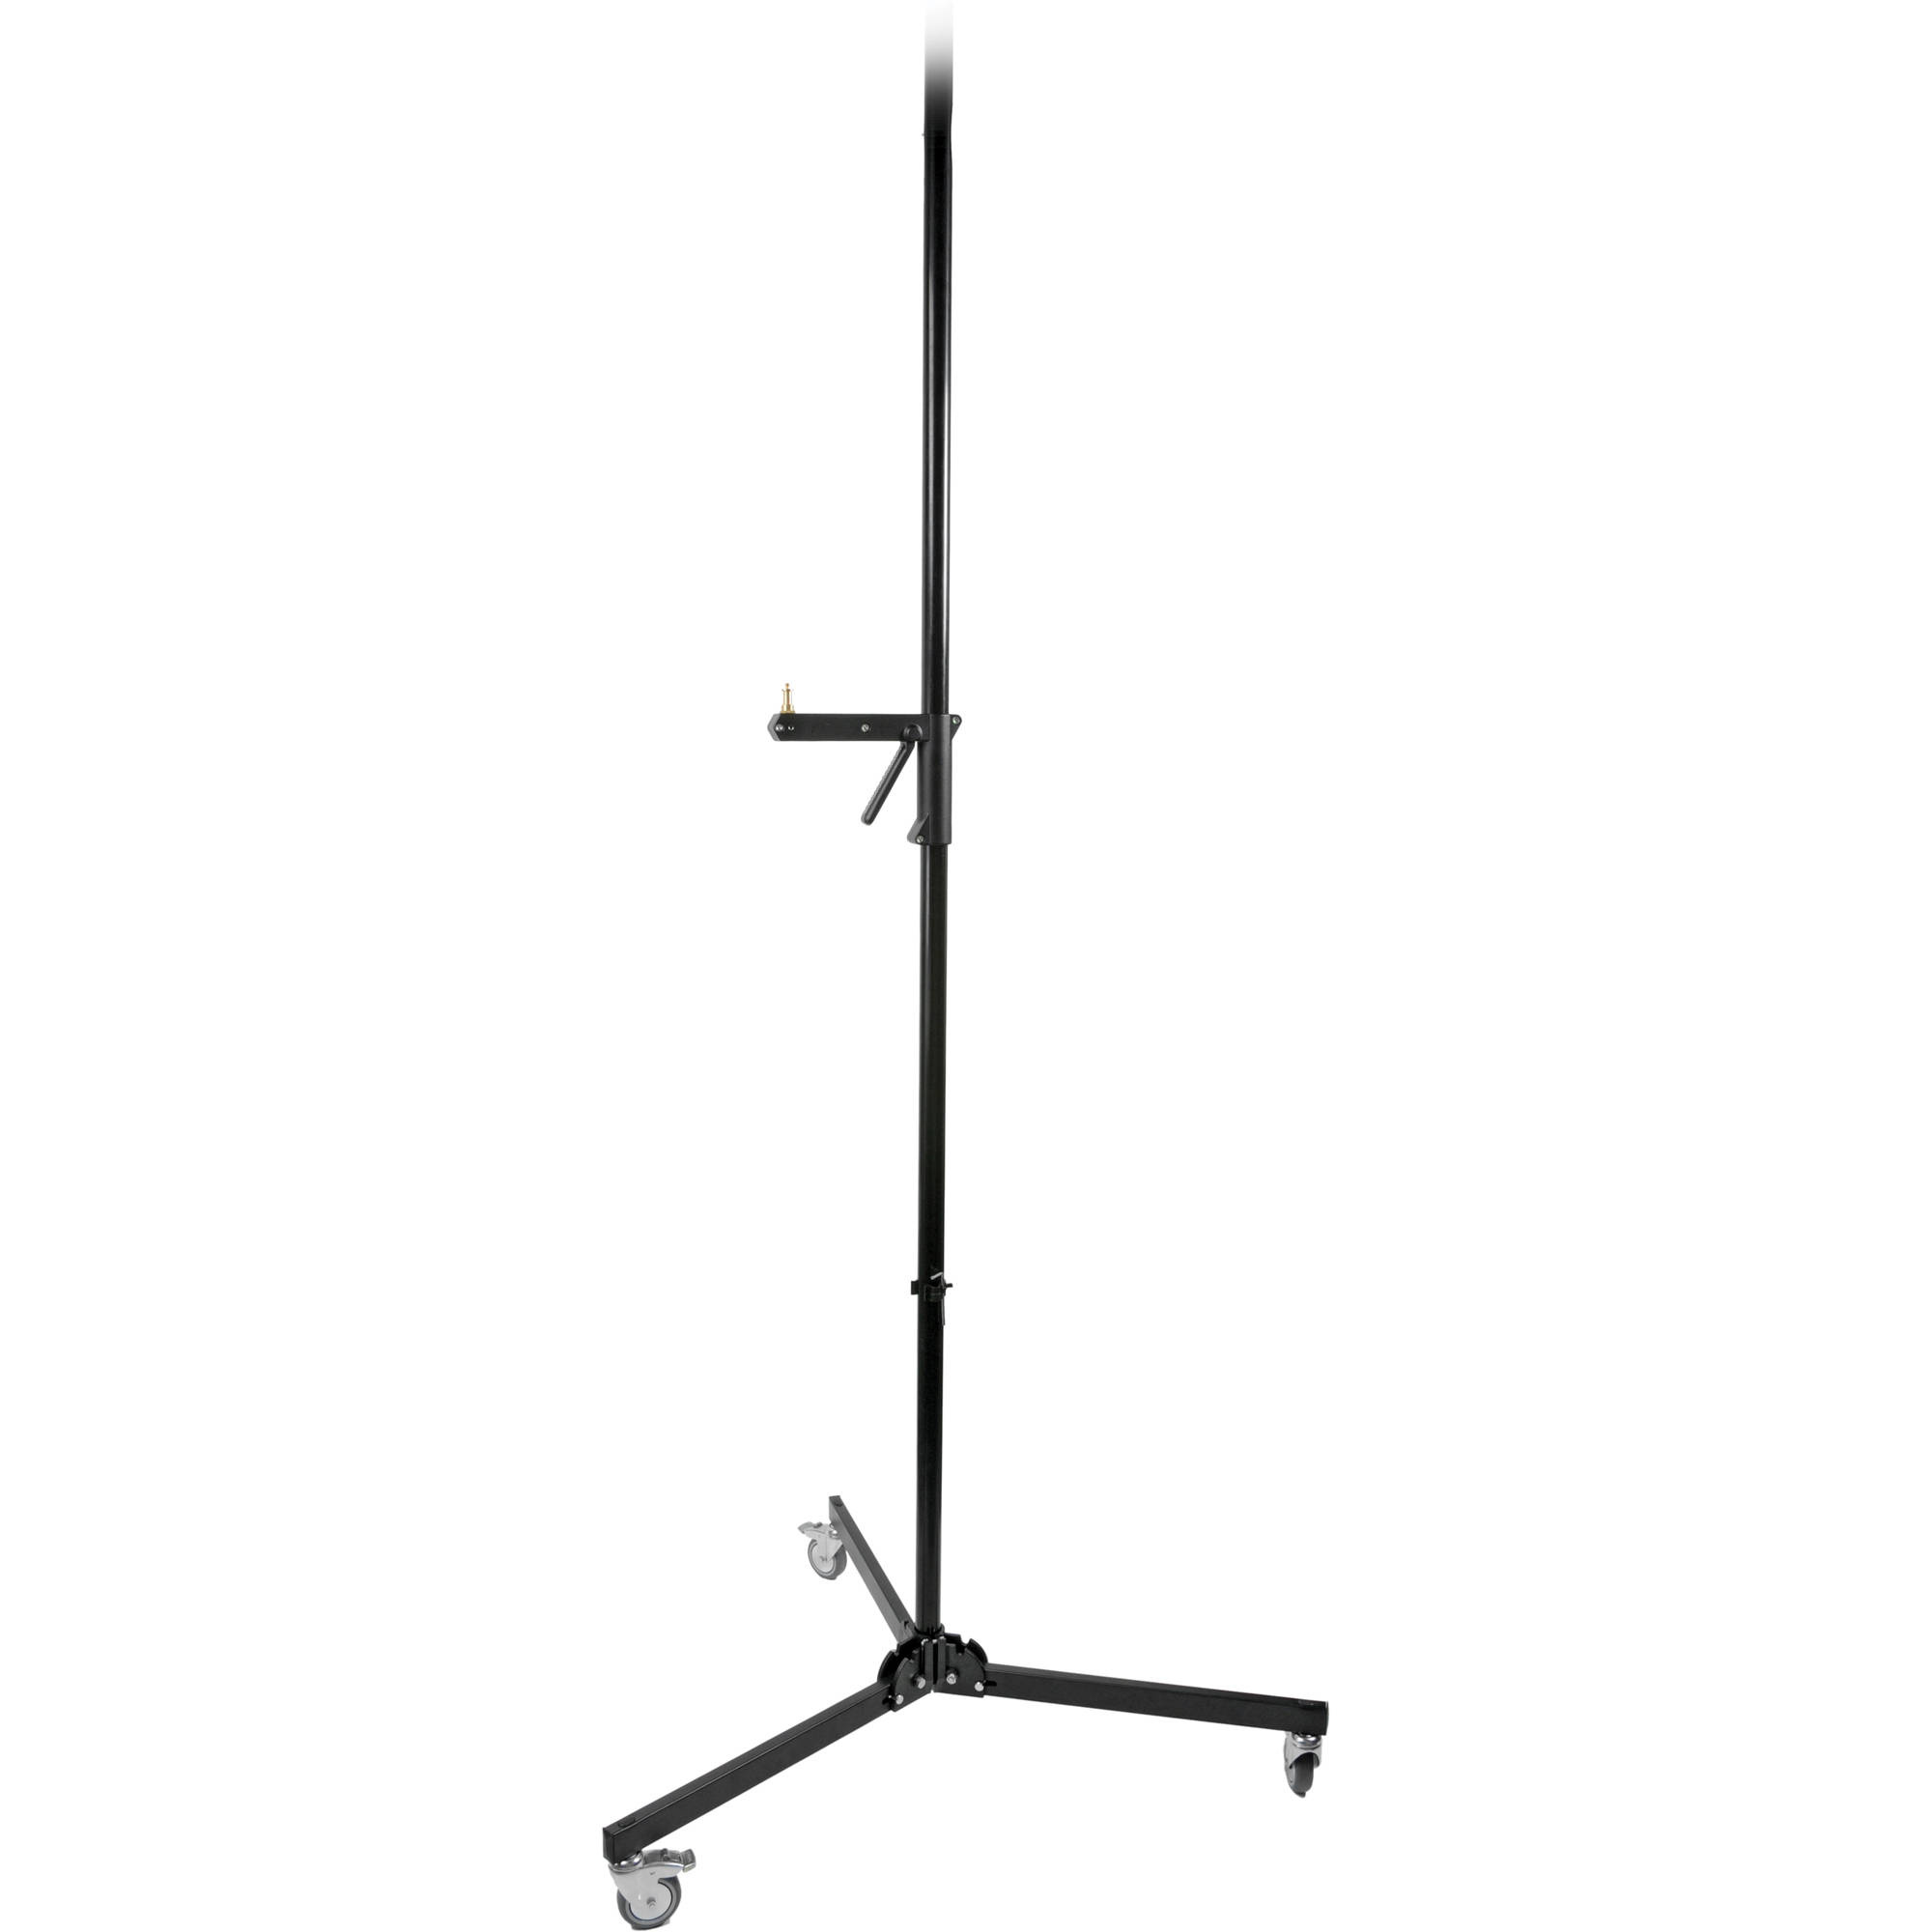 Manfrotto 231B Column Stand with Sliding Arm, Black (2.4m)